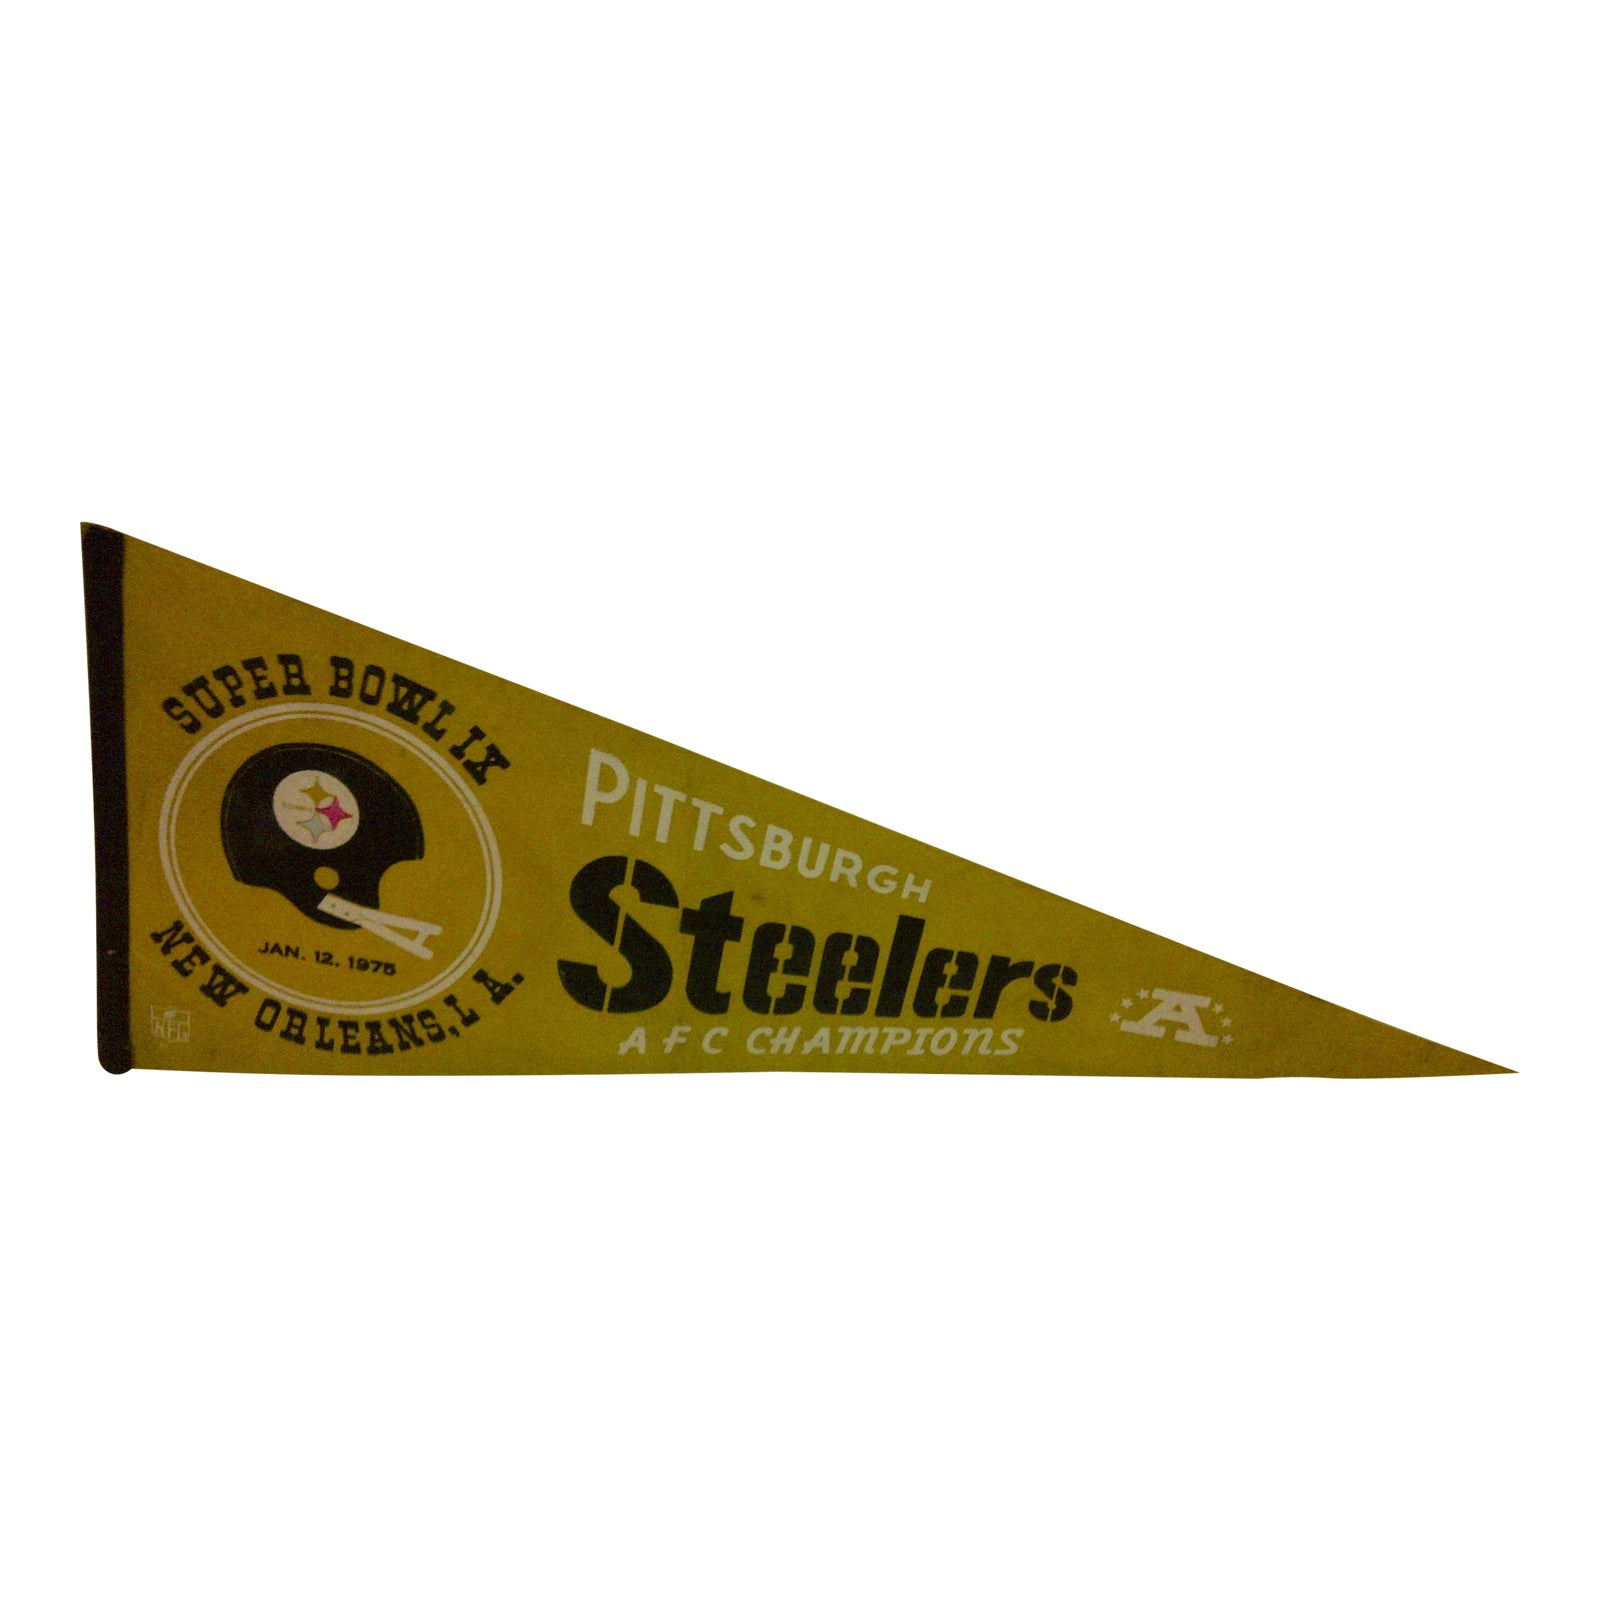 Vintage NFL Pittsburgh Steelers AFC Champions Super Bowl IX Team ...